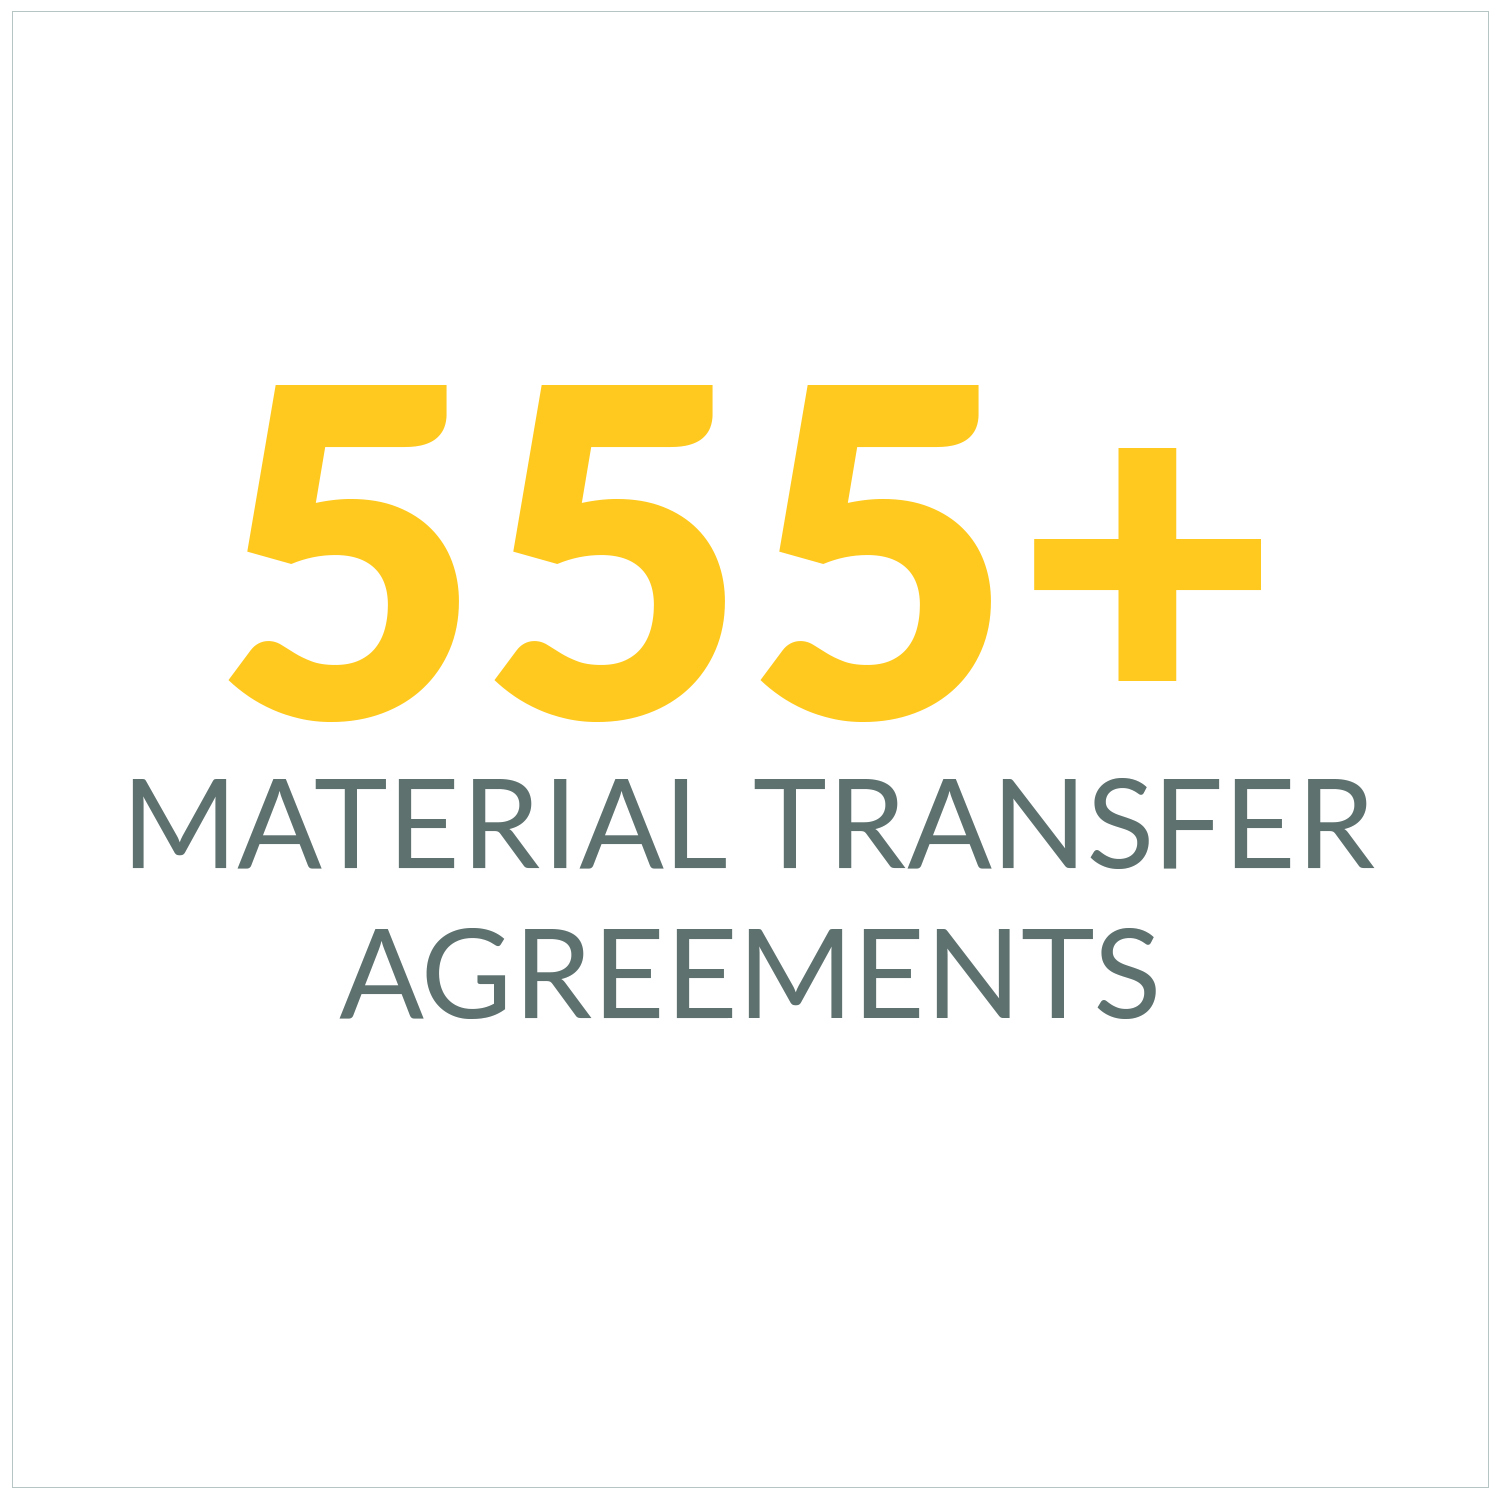 Material transfer agreements at OHSU in FY2019